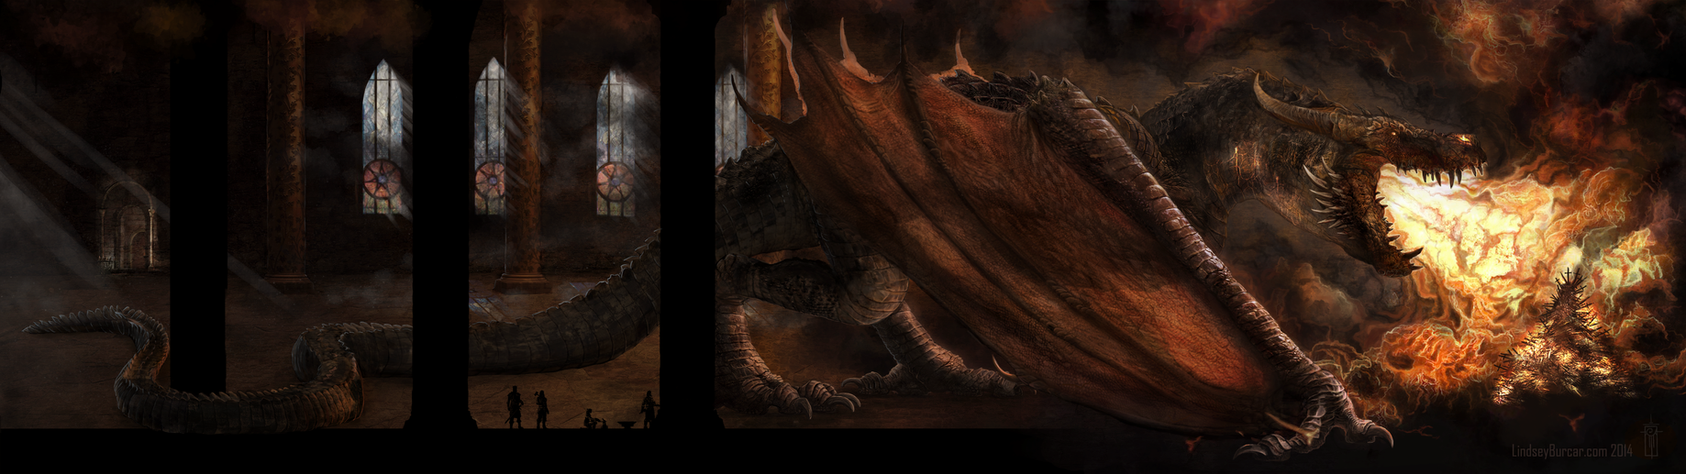 Forging the iron throne by lindseyburcar on deviantart for Iron throne painting